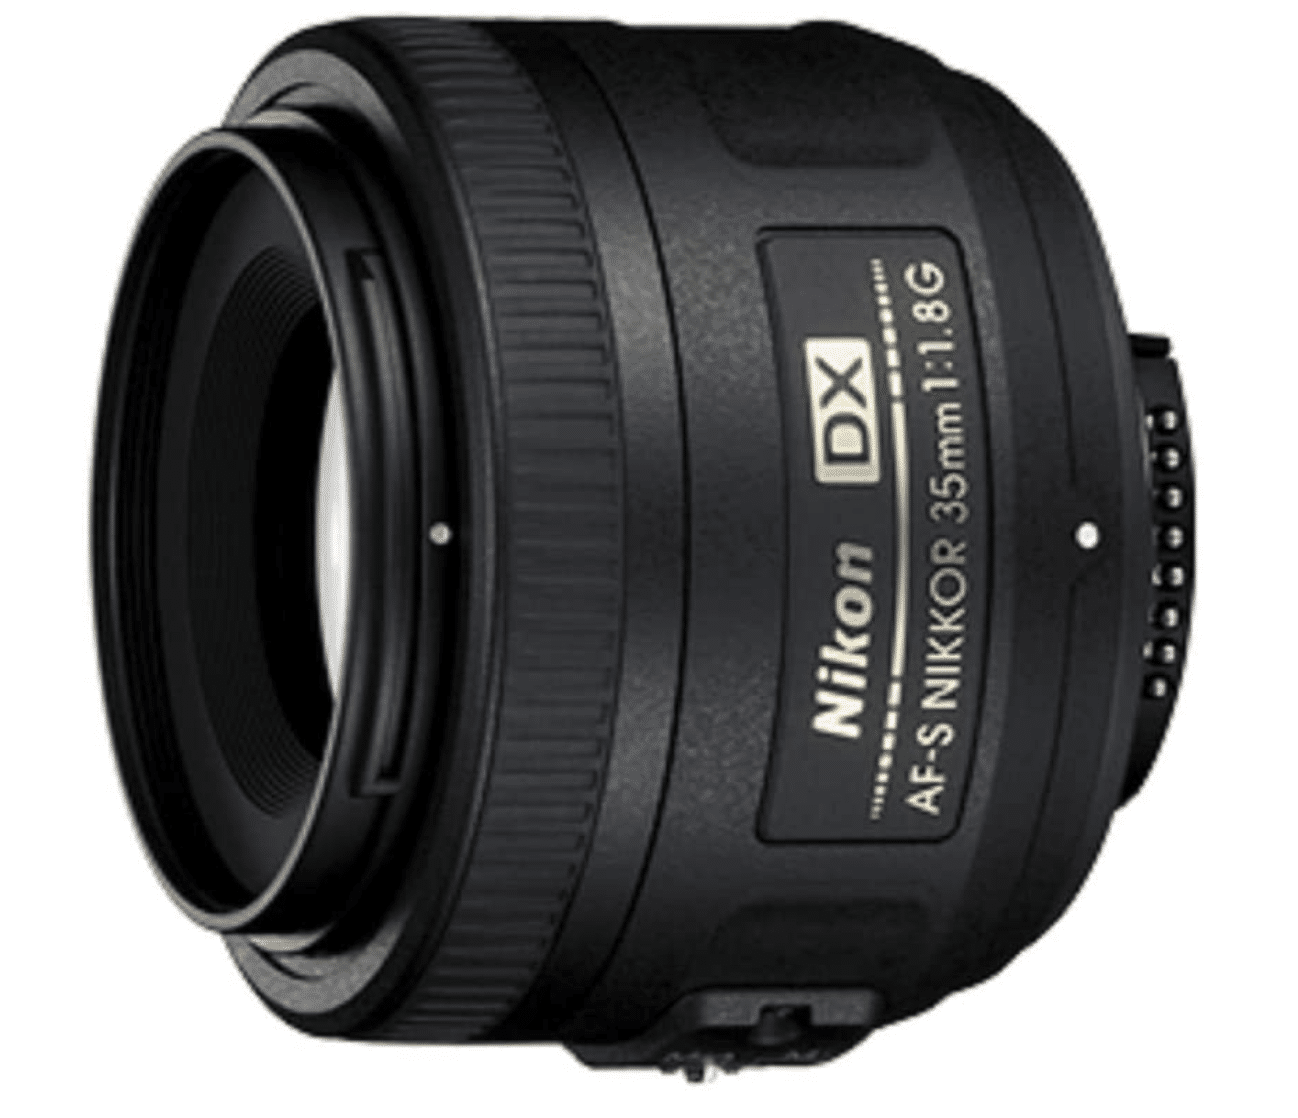 Black spherical camera lens Nikon 35mm 1.8 best gifts for photographers.